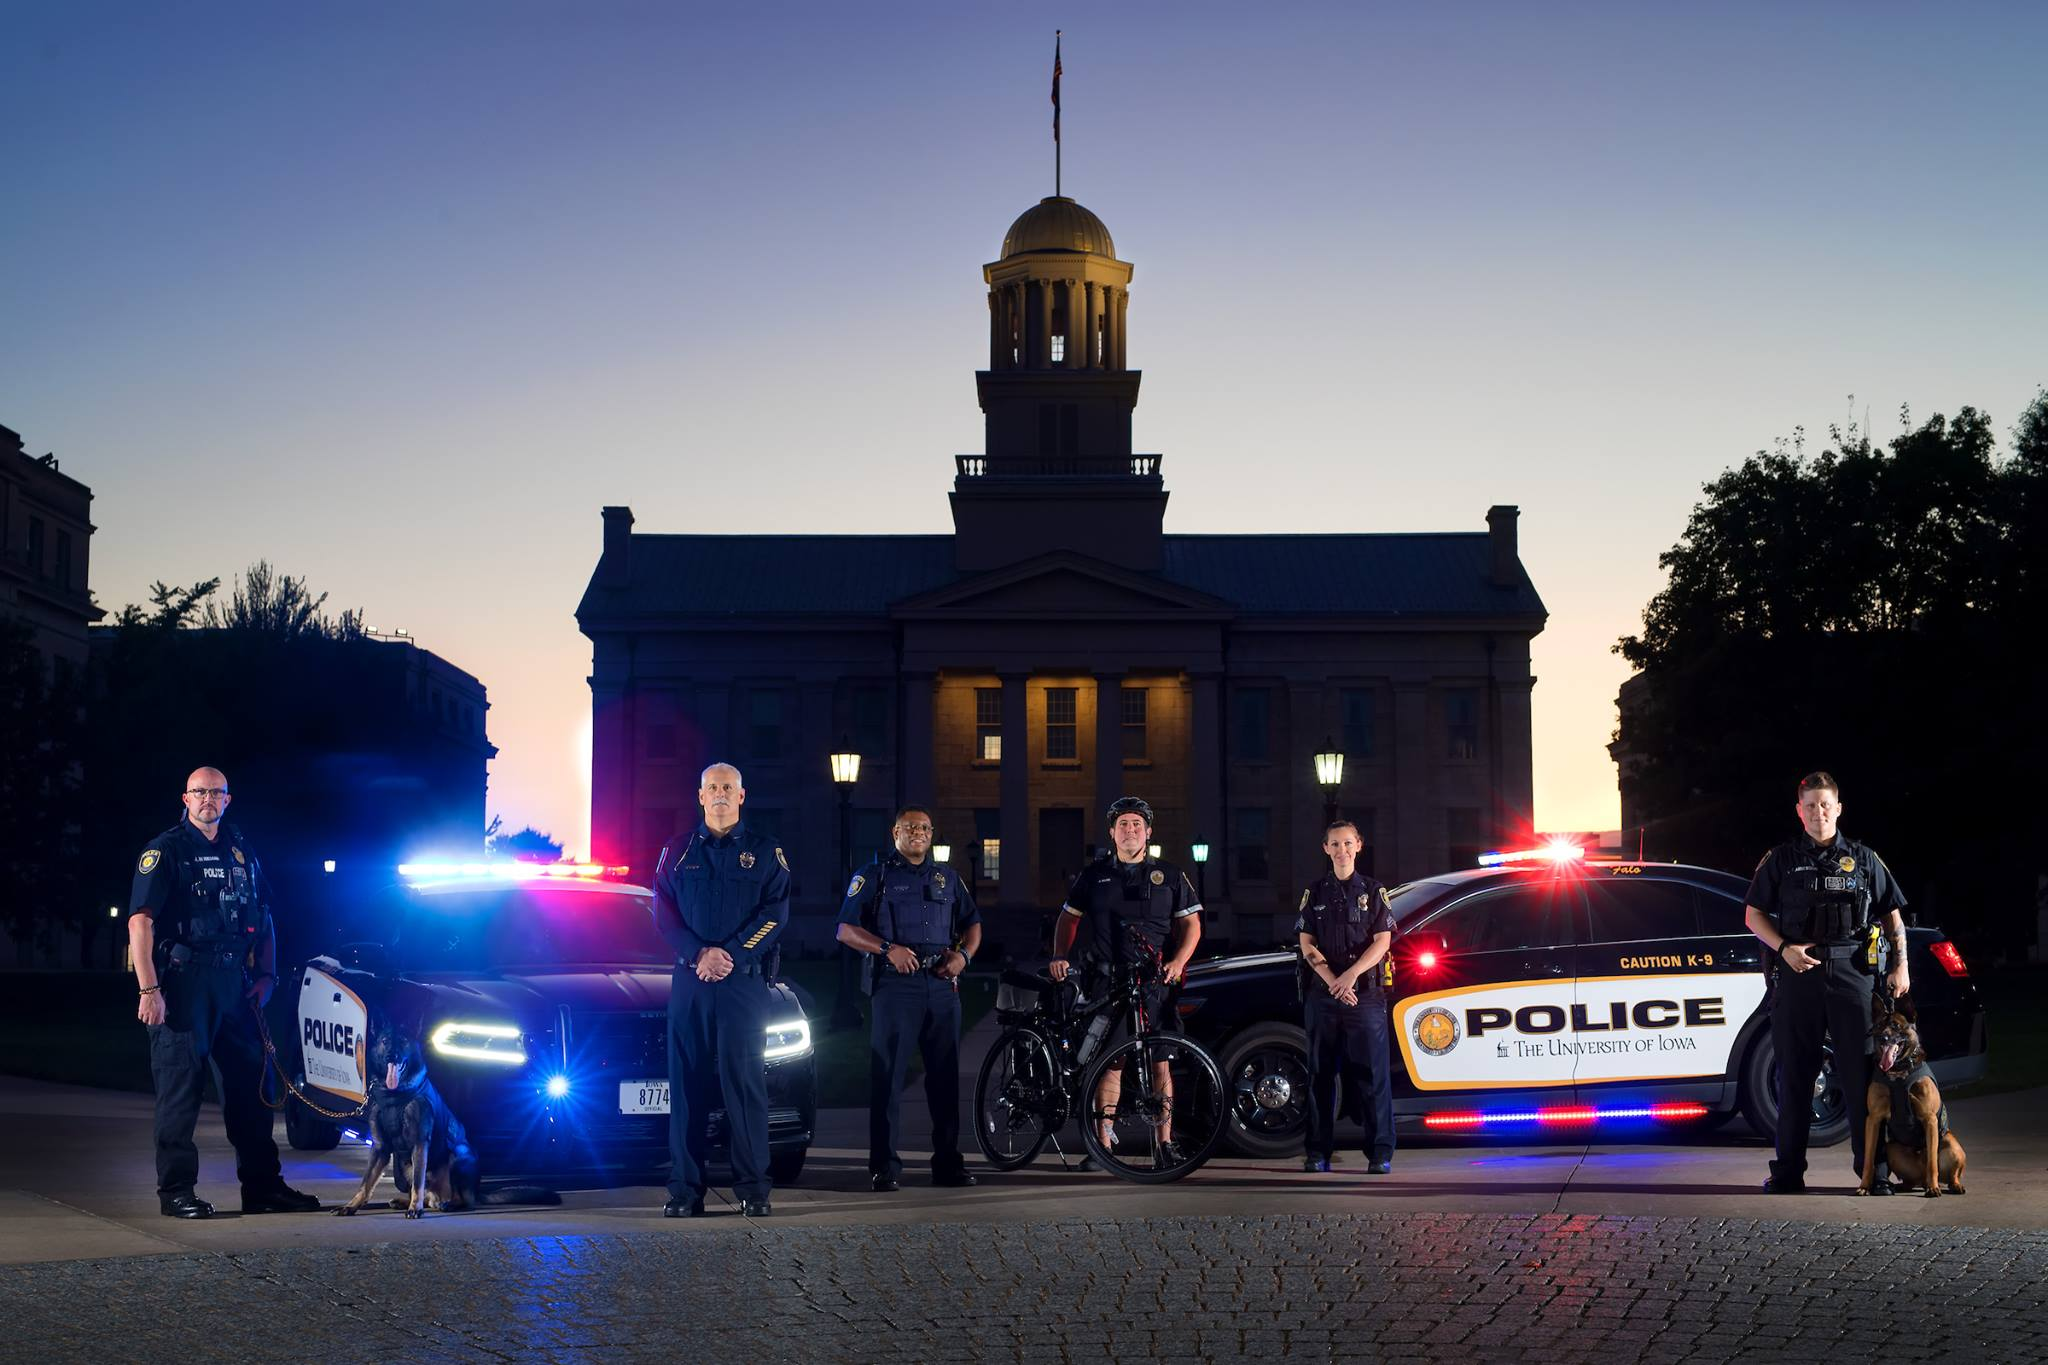 University of Iowa PD